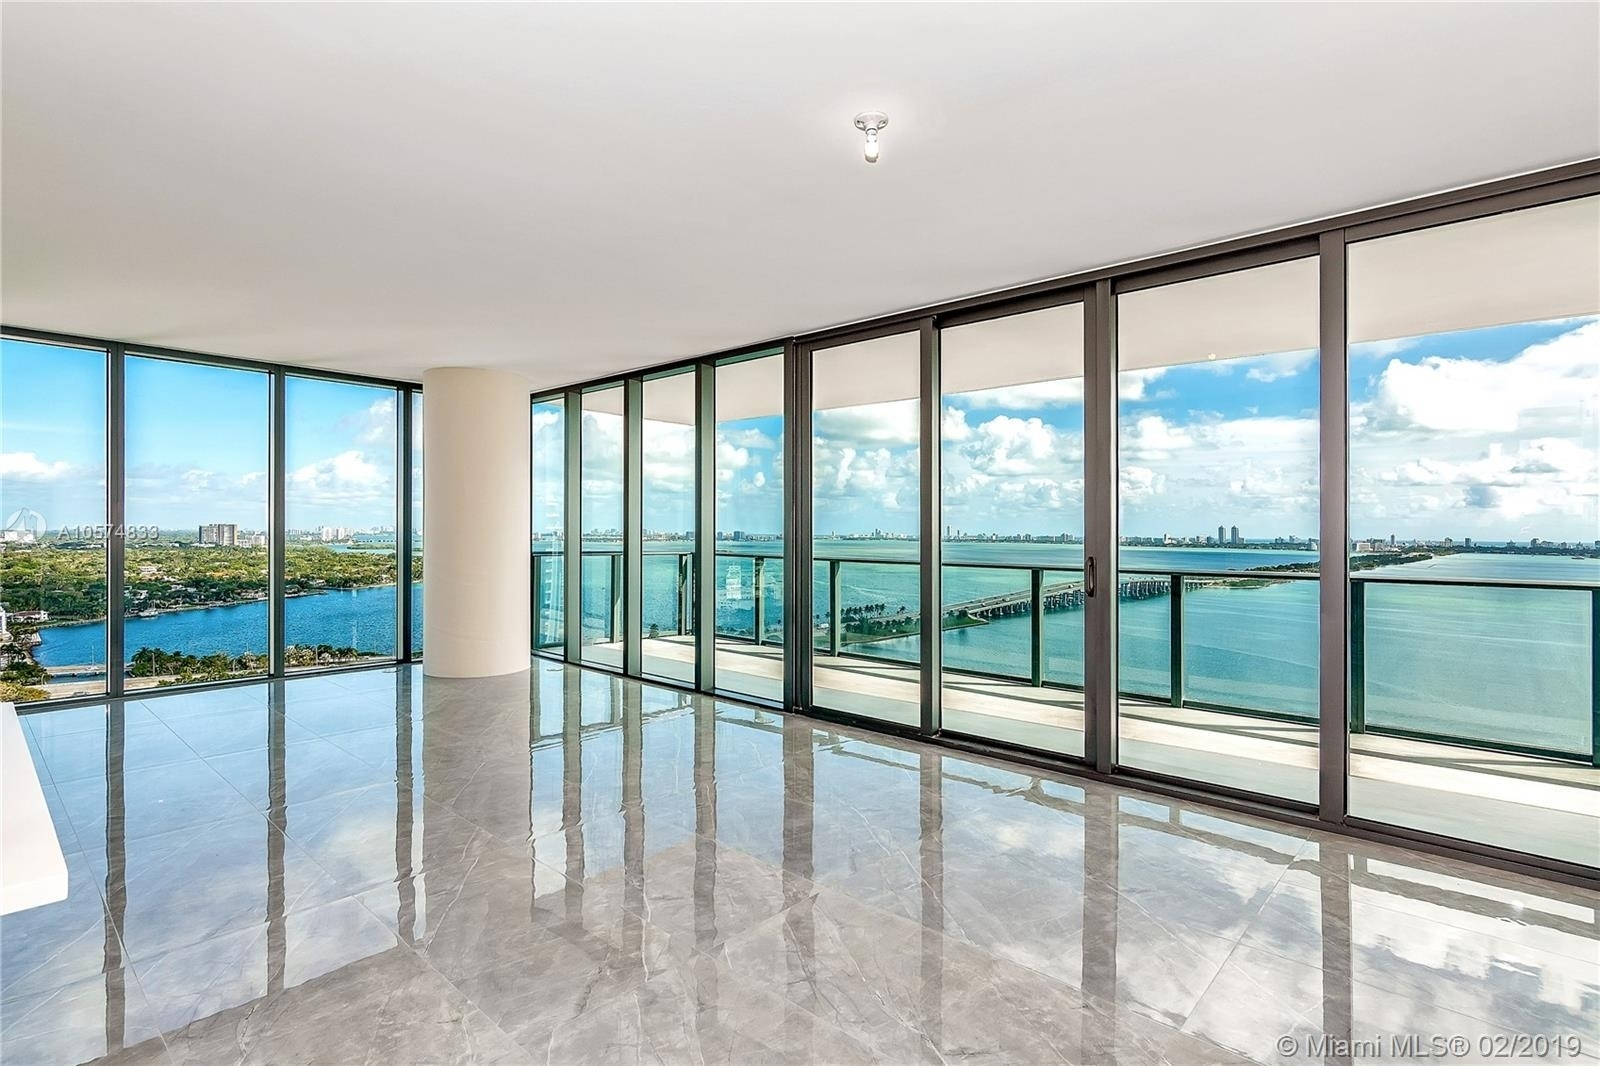 Property à 3131 NE 7 ave , 2506 Paraiso Bay, Miami, FL 33137